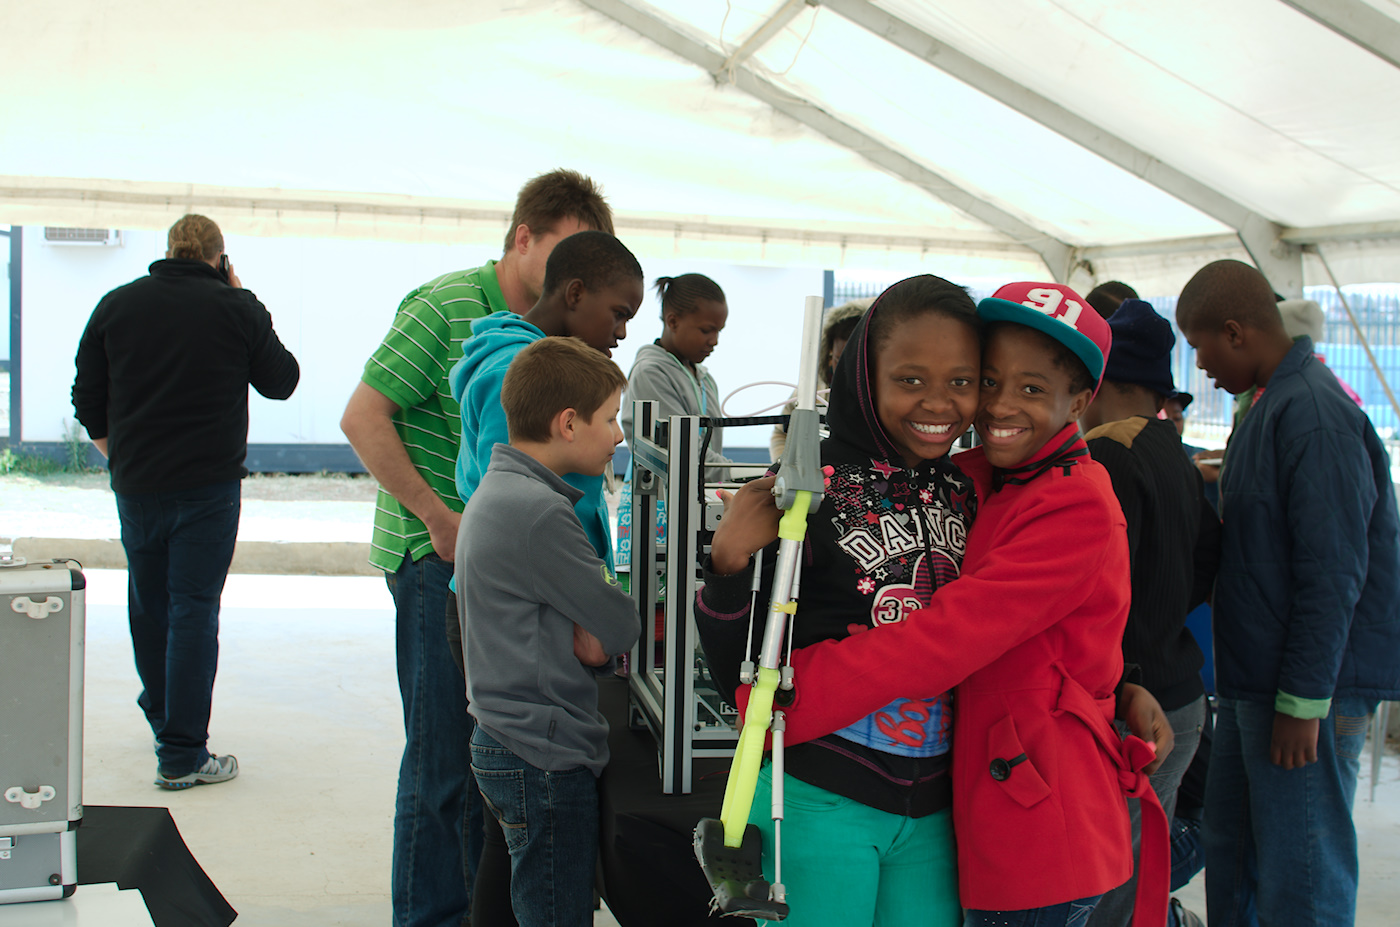 Kids posing with RoboLeg, another low cost prosthetic from Richard van As.